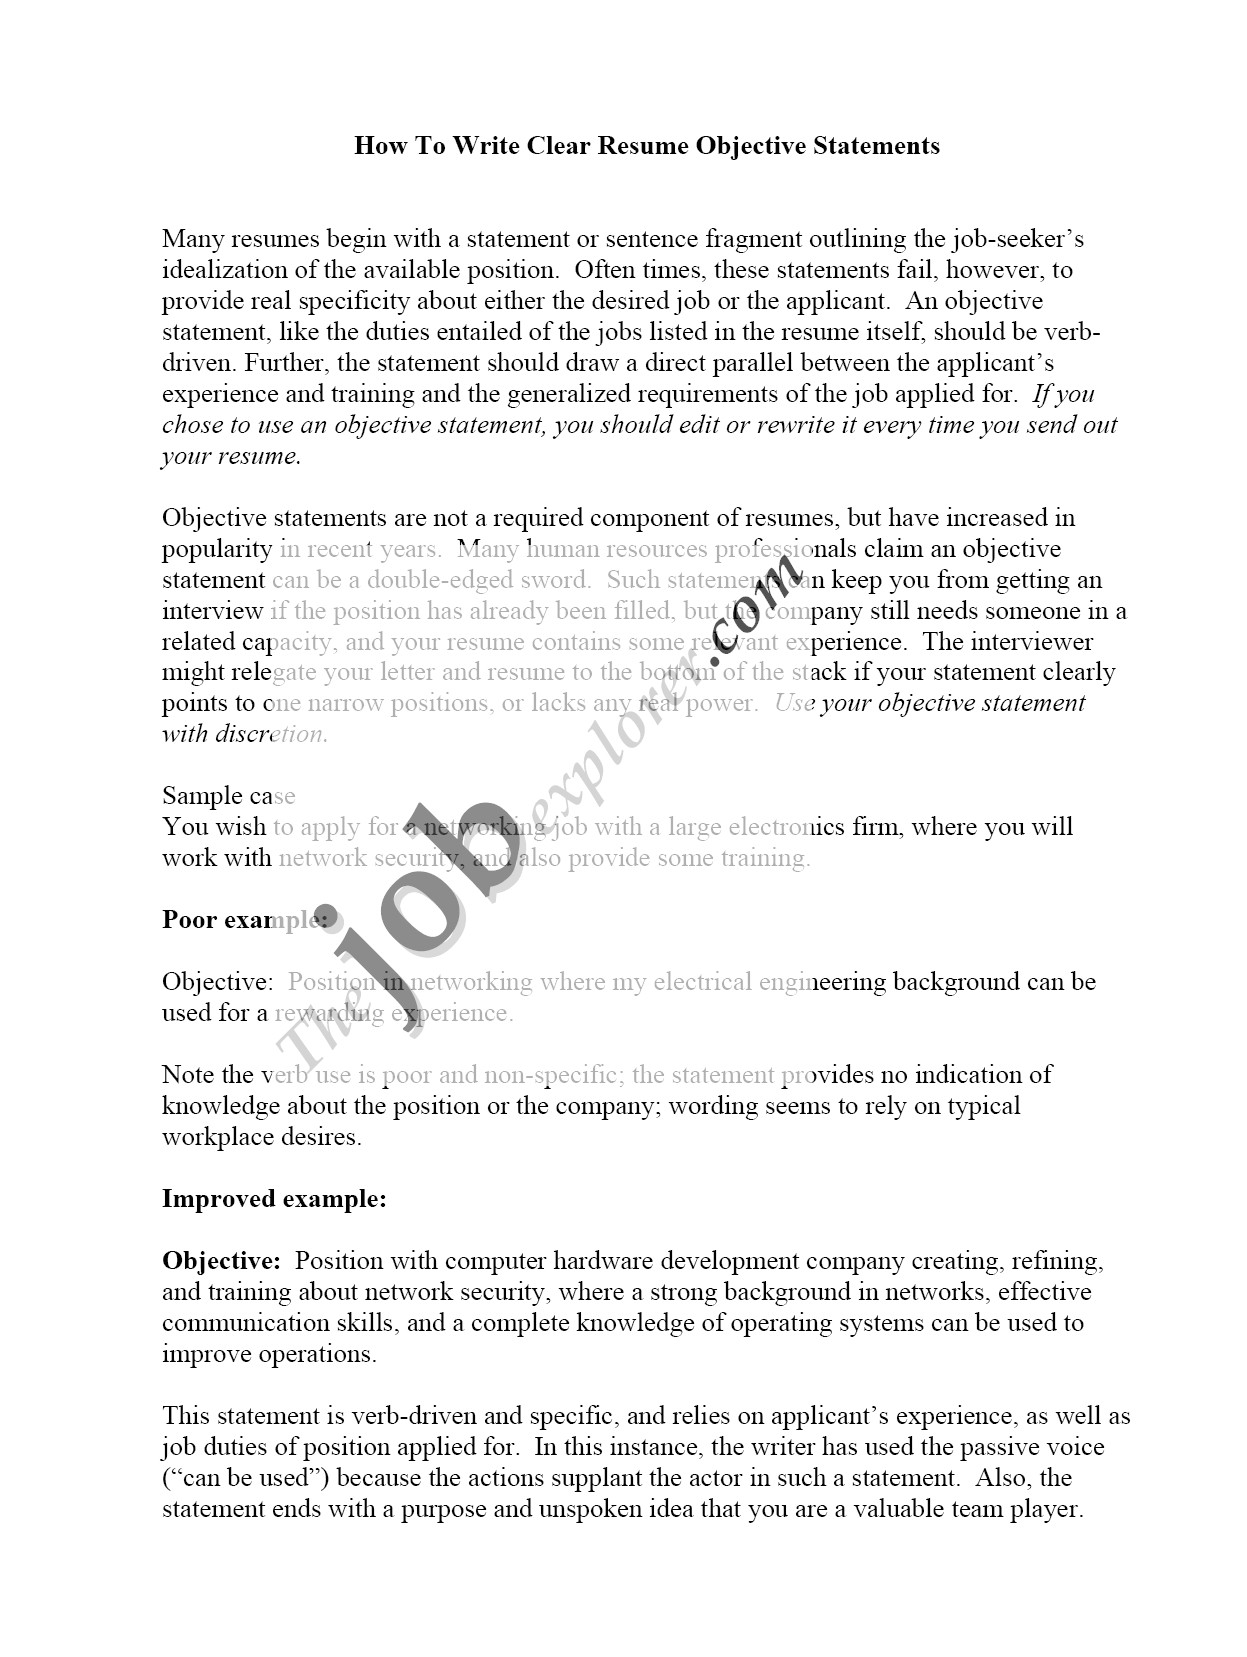 why resume objective is important